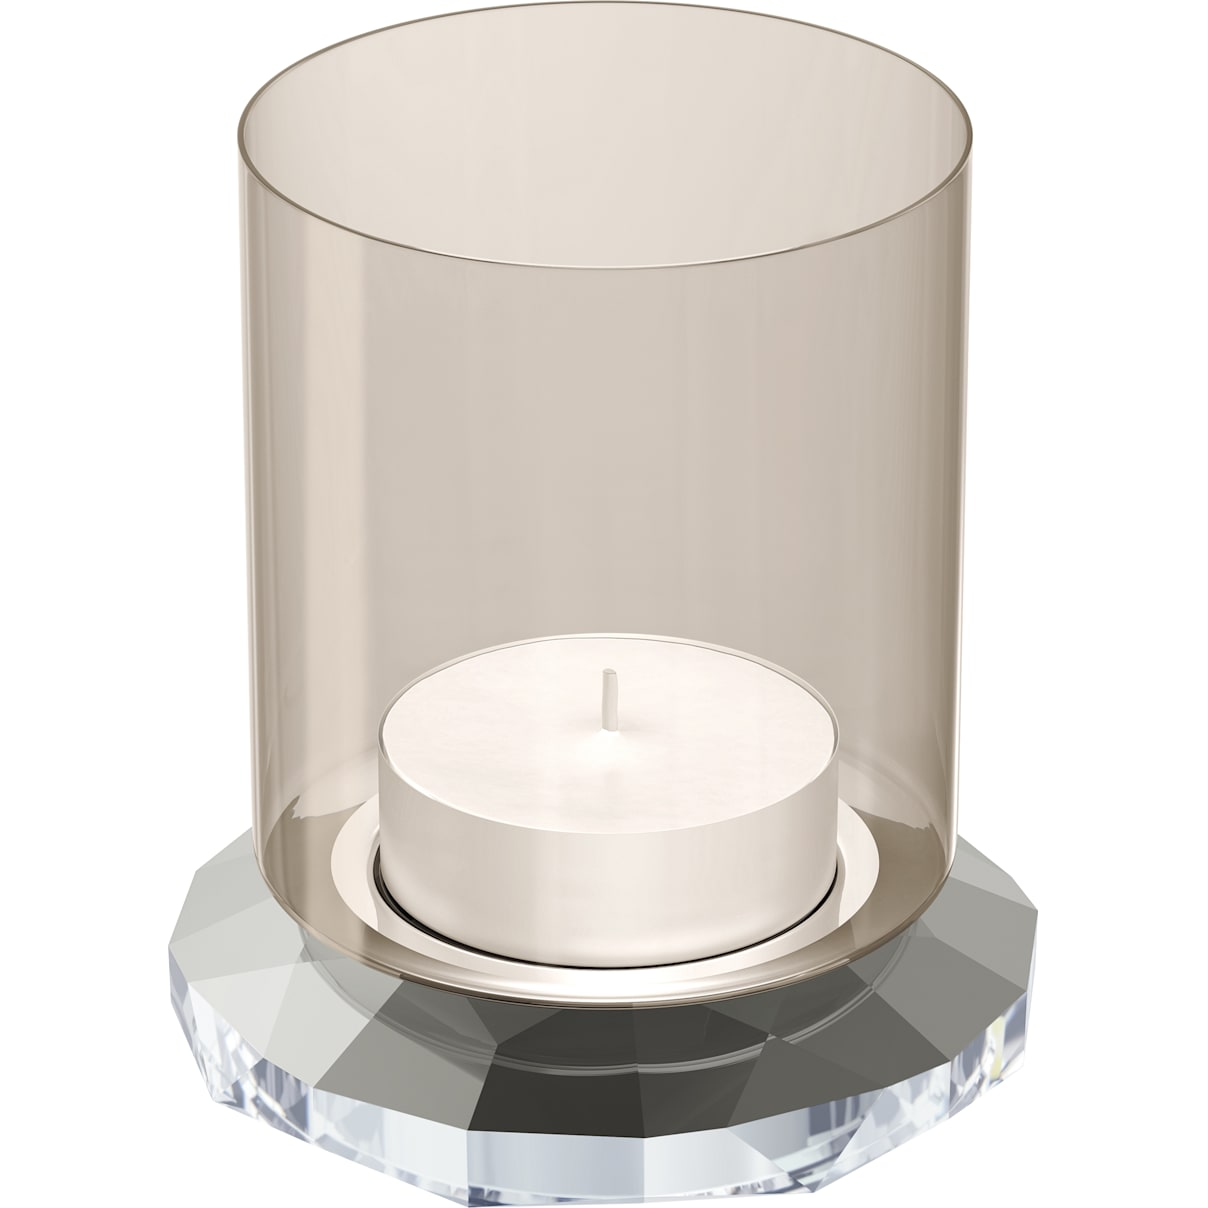 Swarovski Allure Tea Light, Silver Tone